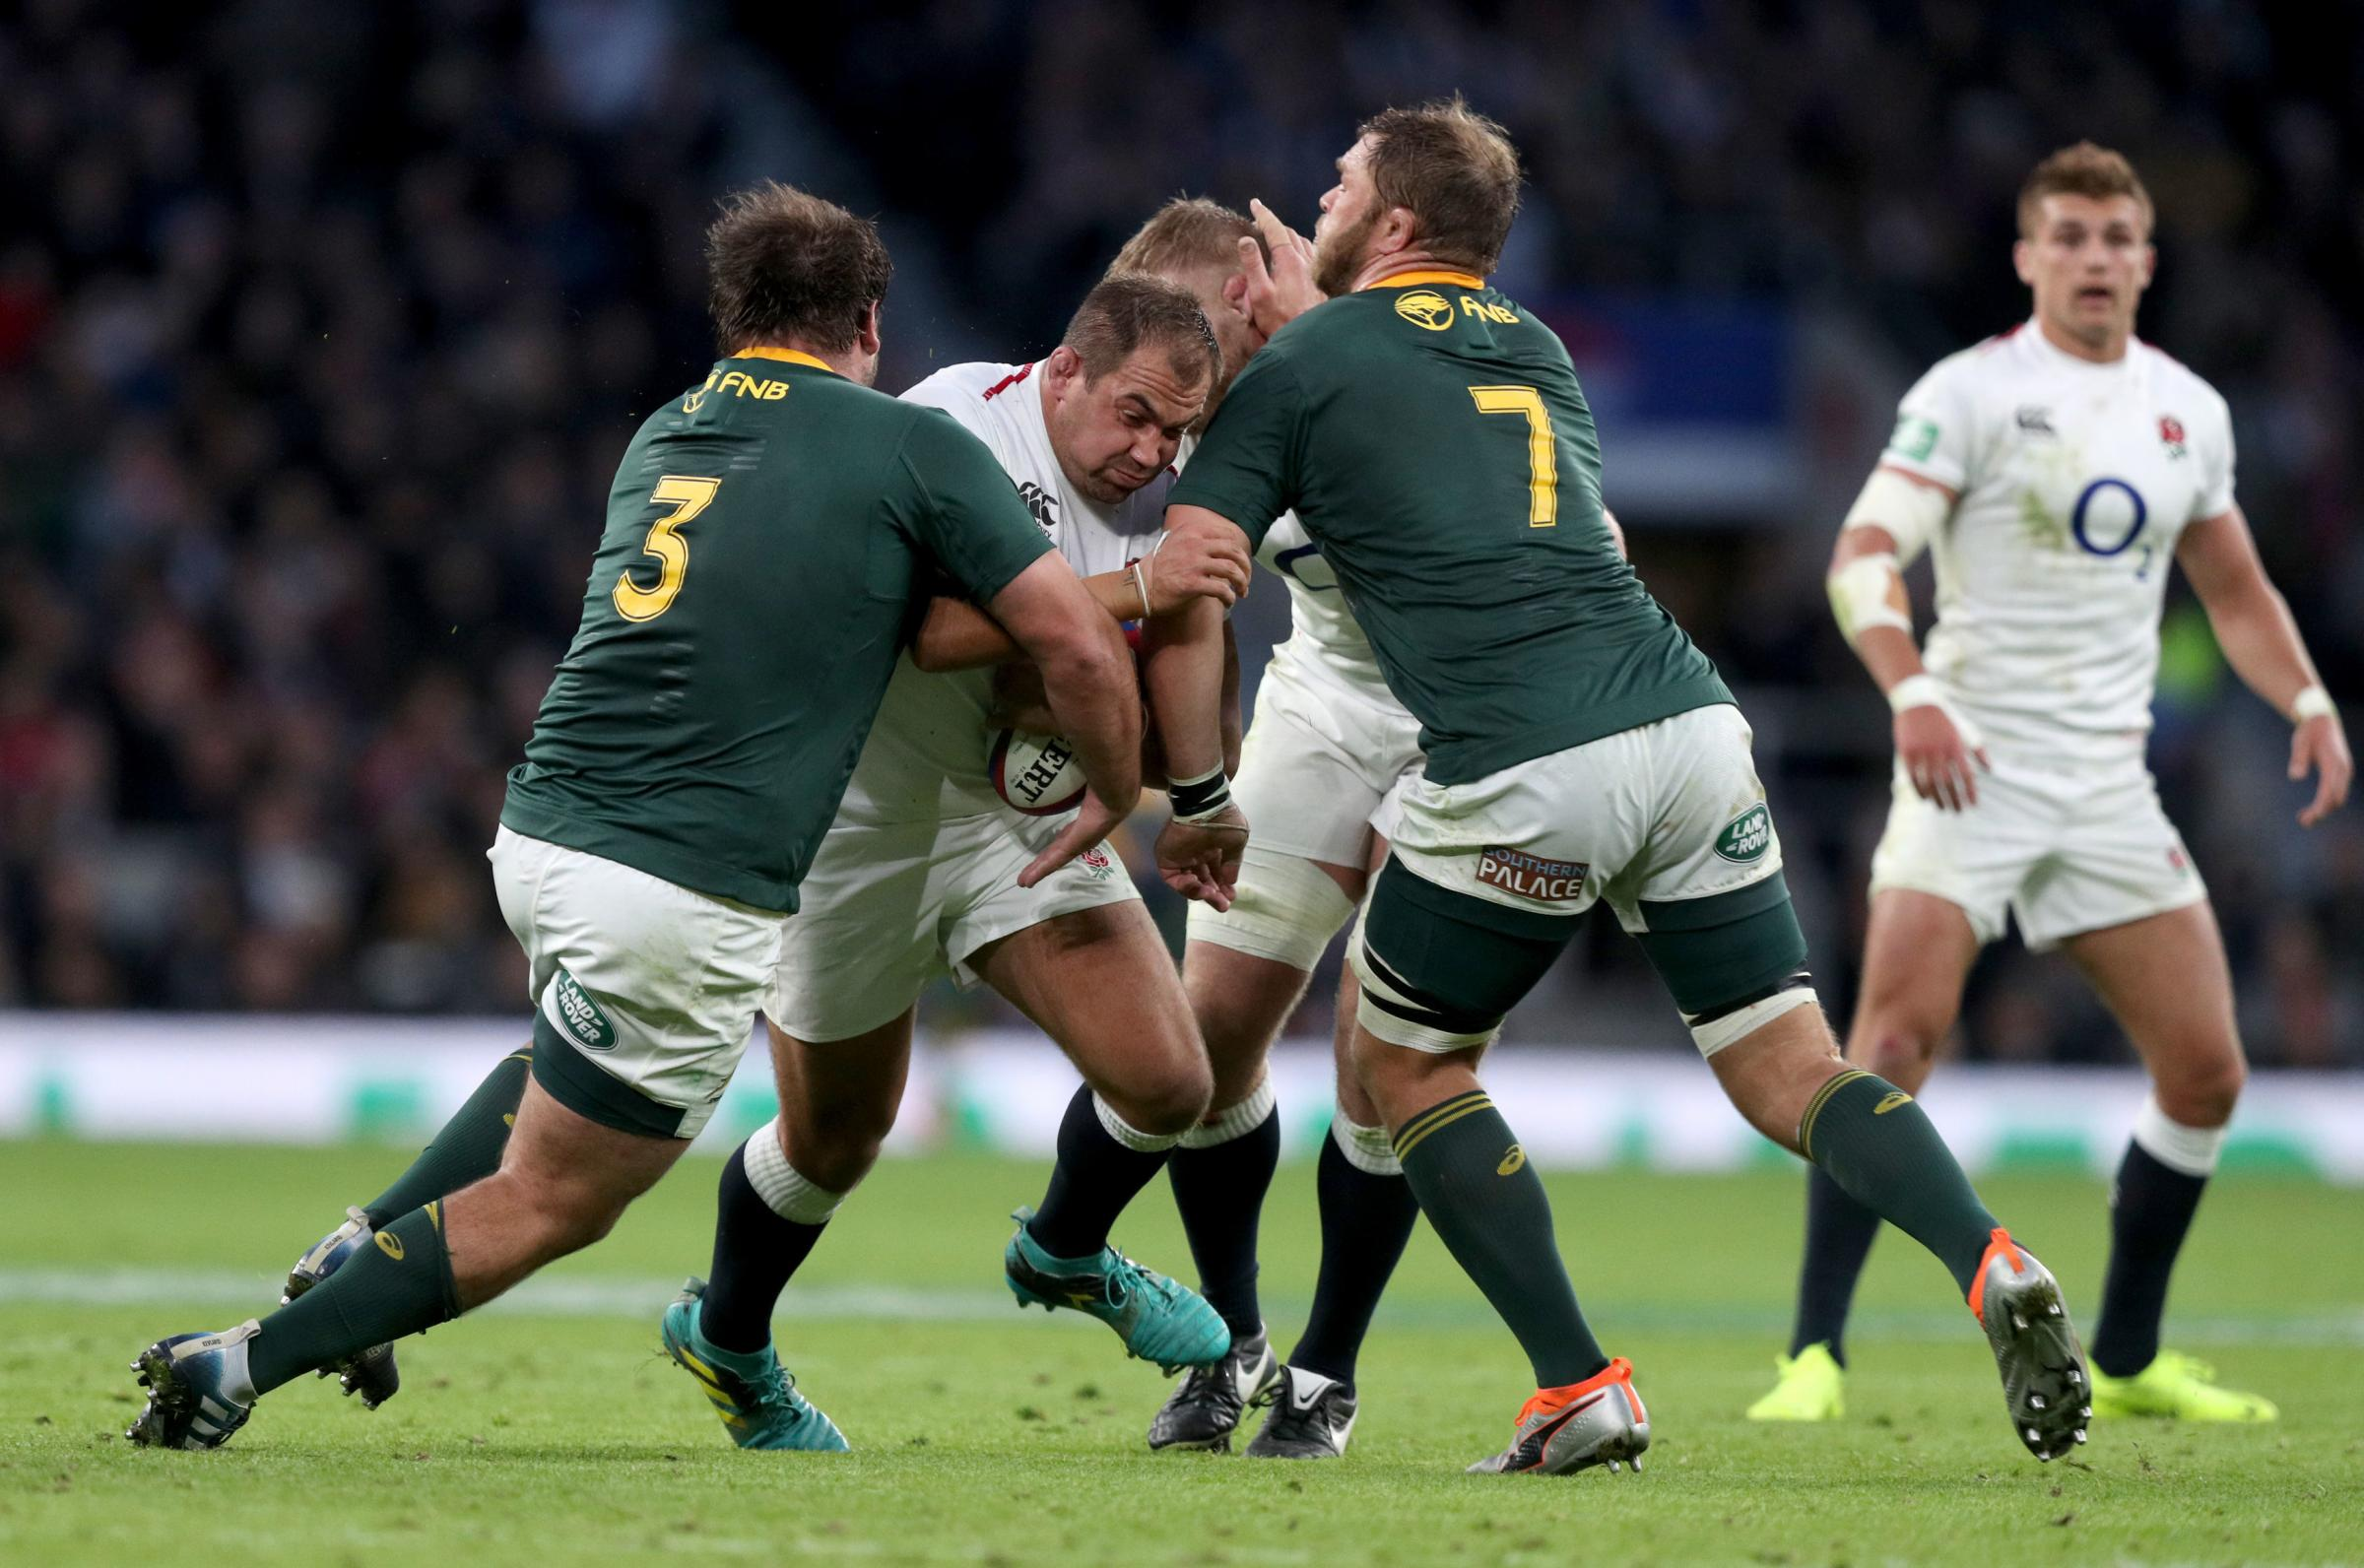 CLASH: England's Ben Moon is tackled by two South Africa players at Twickenham yesterday. Pic: Andrew Matthews/PA Wire